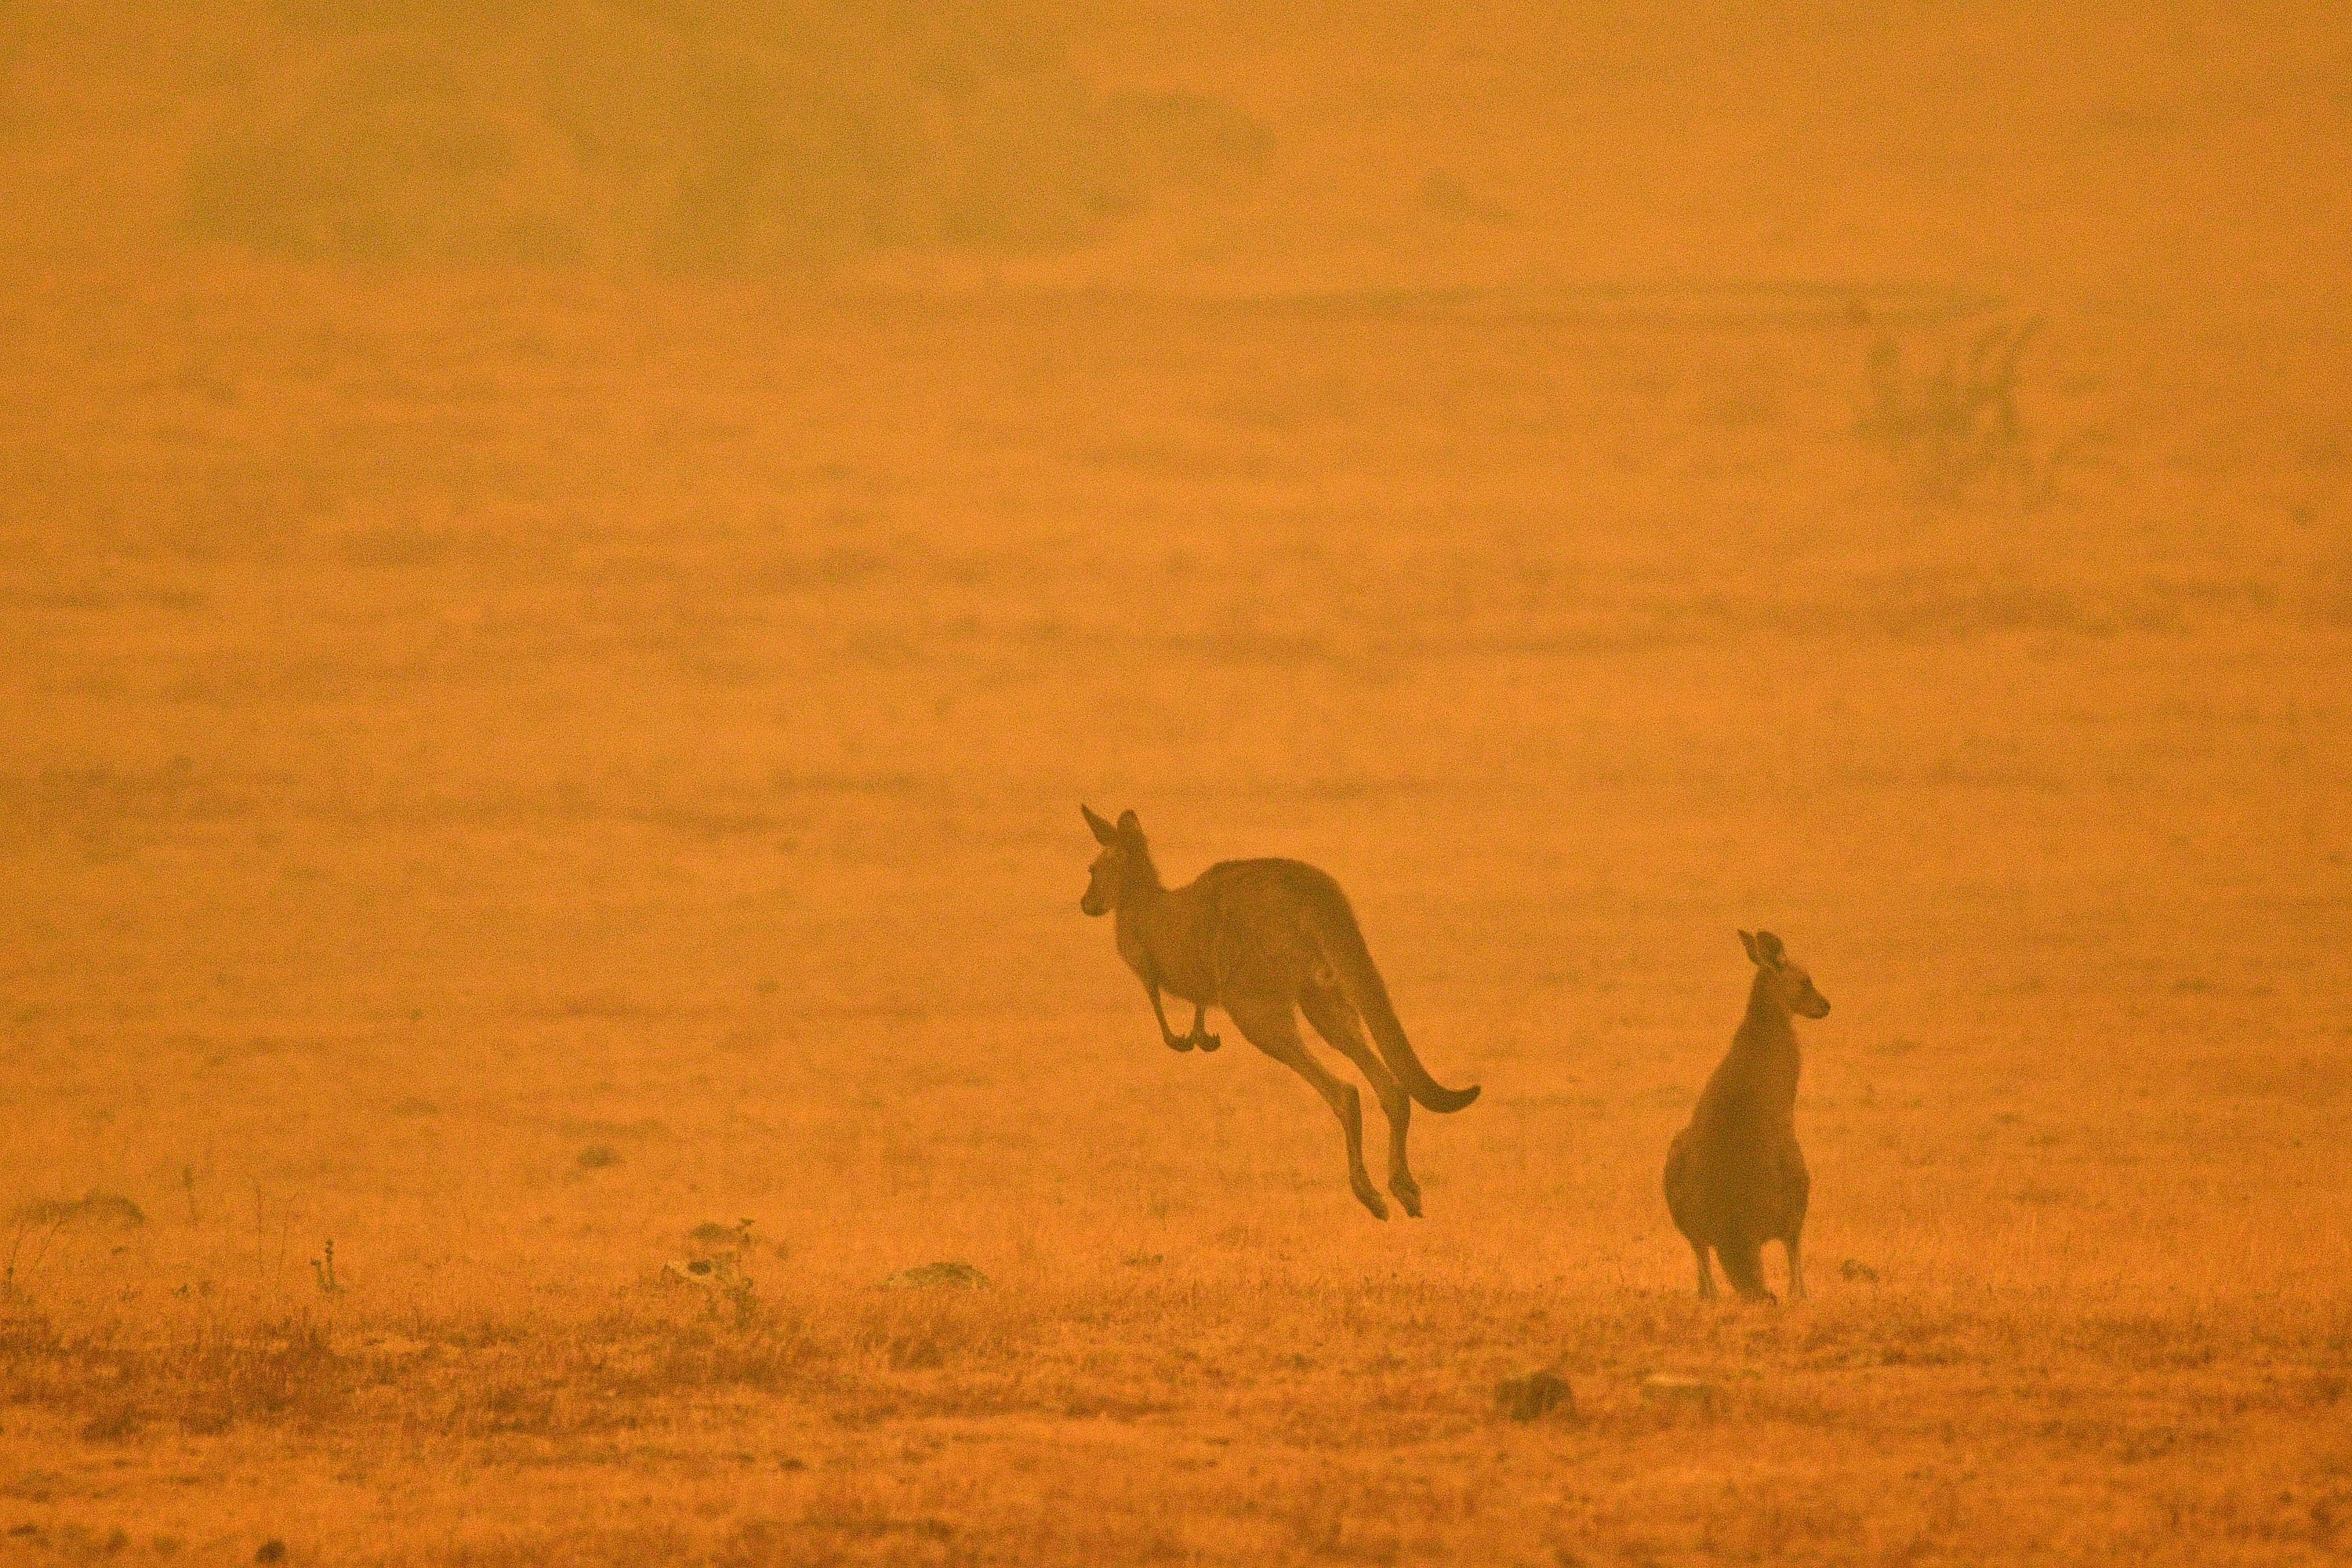 A kangaroo jumps in a field amidst smoke from a bushfire in Snowy Valley on the outskirts of Cooma on January 4